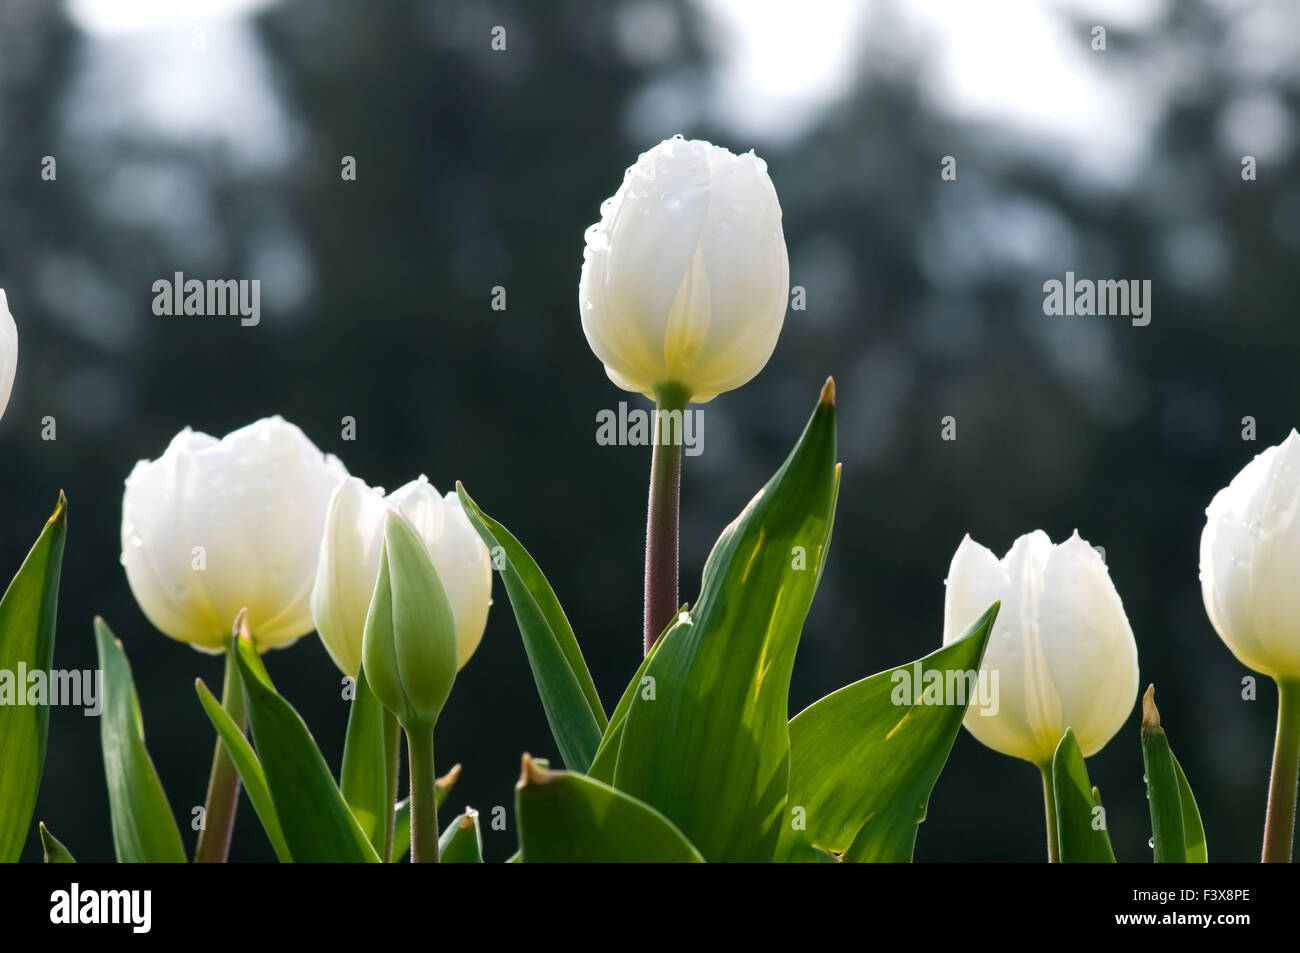 Line Of Tulips Stock Photos Line Of Tulips Stock Images Alamy